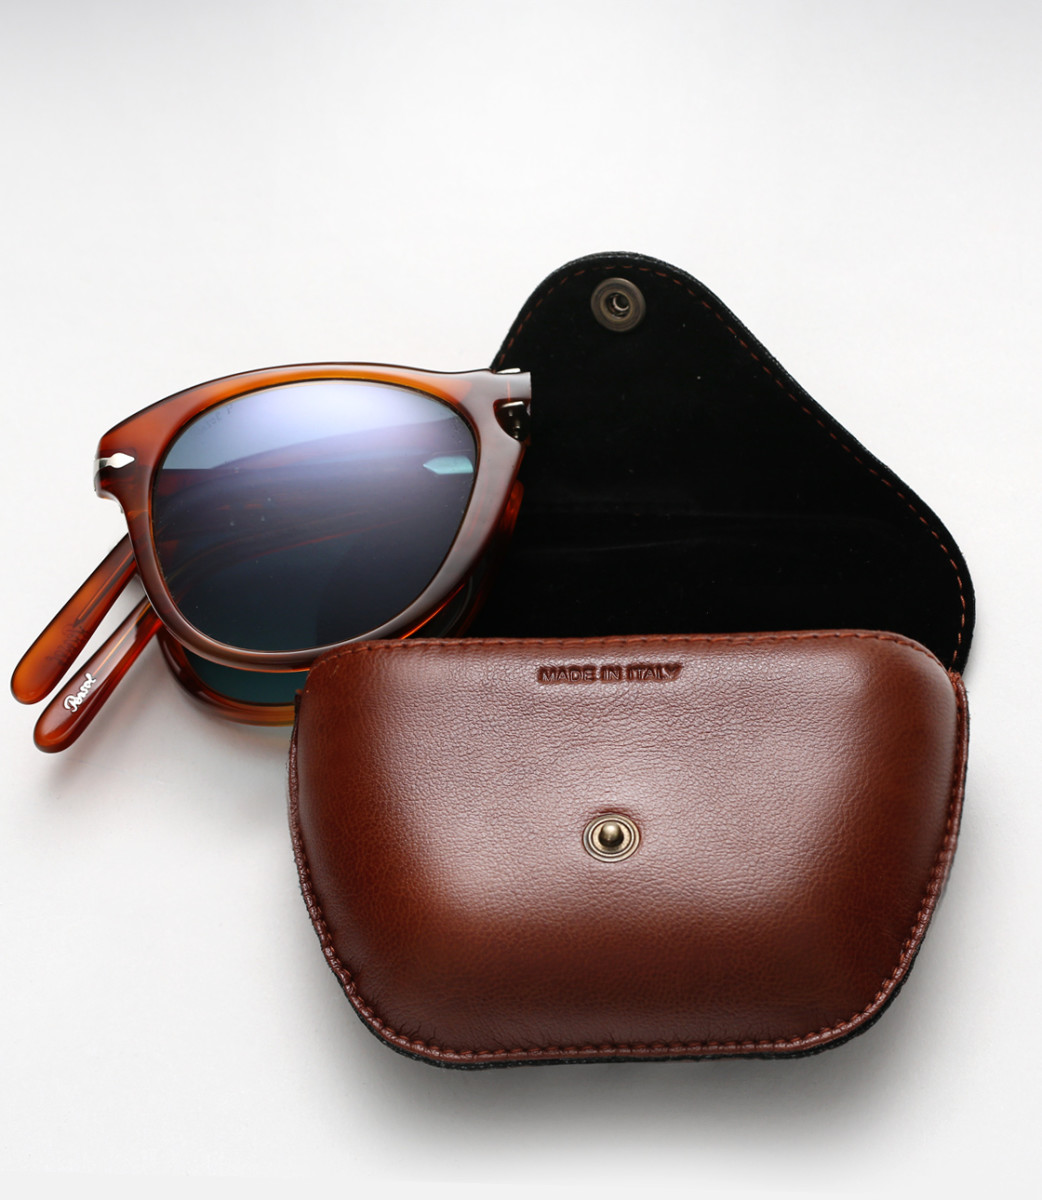 Steve Mcqueen Sunglasses  re issued limited edition persol 714 steve mcqueen sunglasses airows